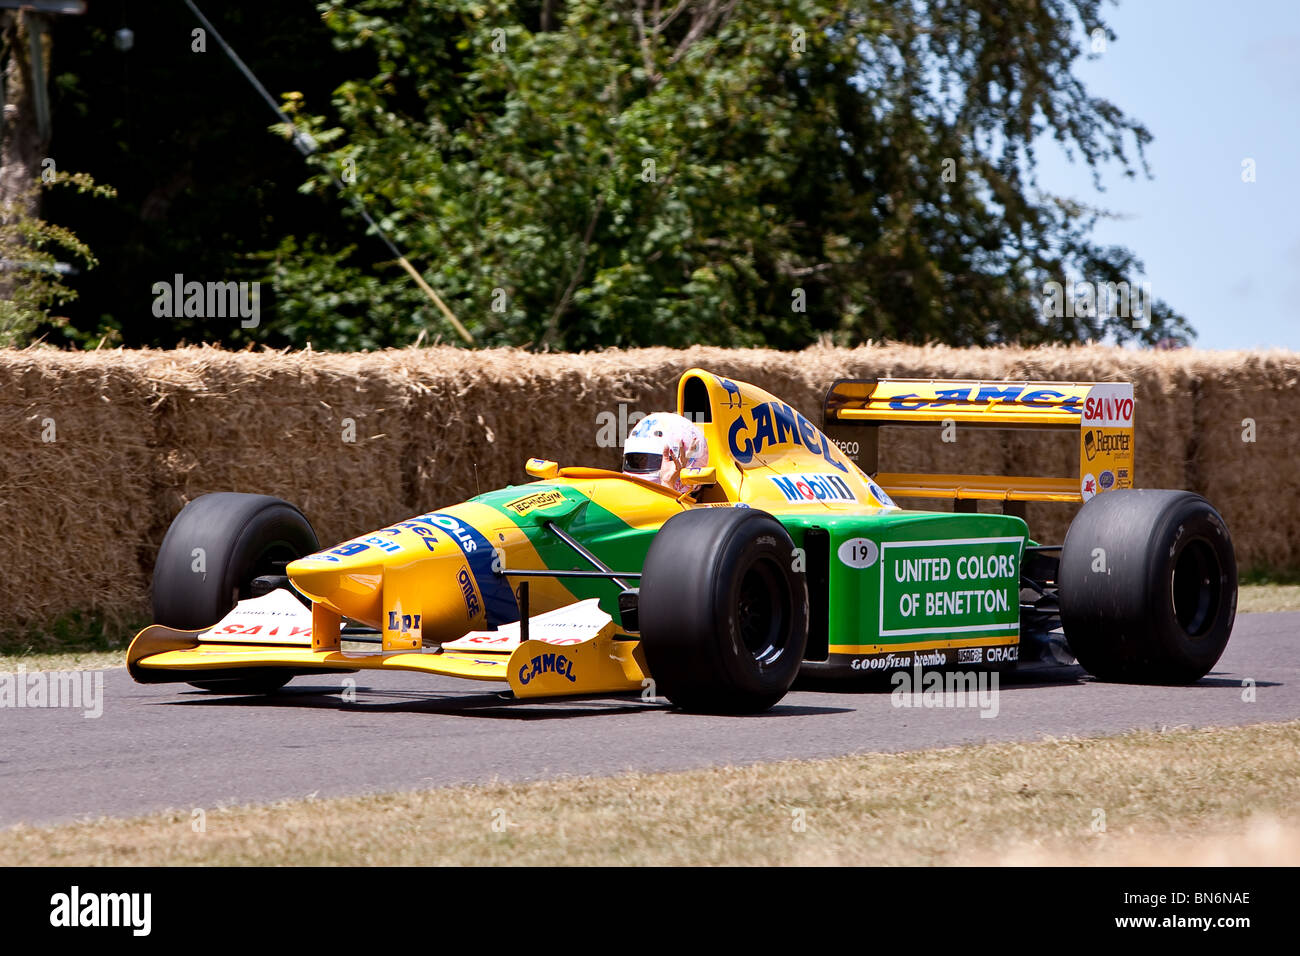 1992 B192 Benetton Cosworth at the Festival of Speed, Goodwood - Stock Image